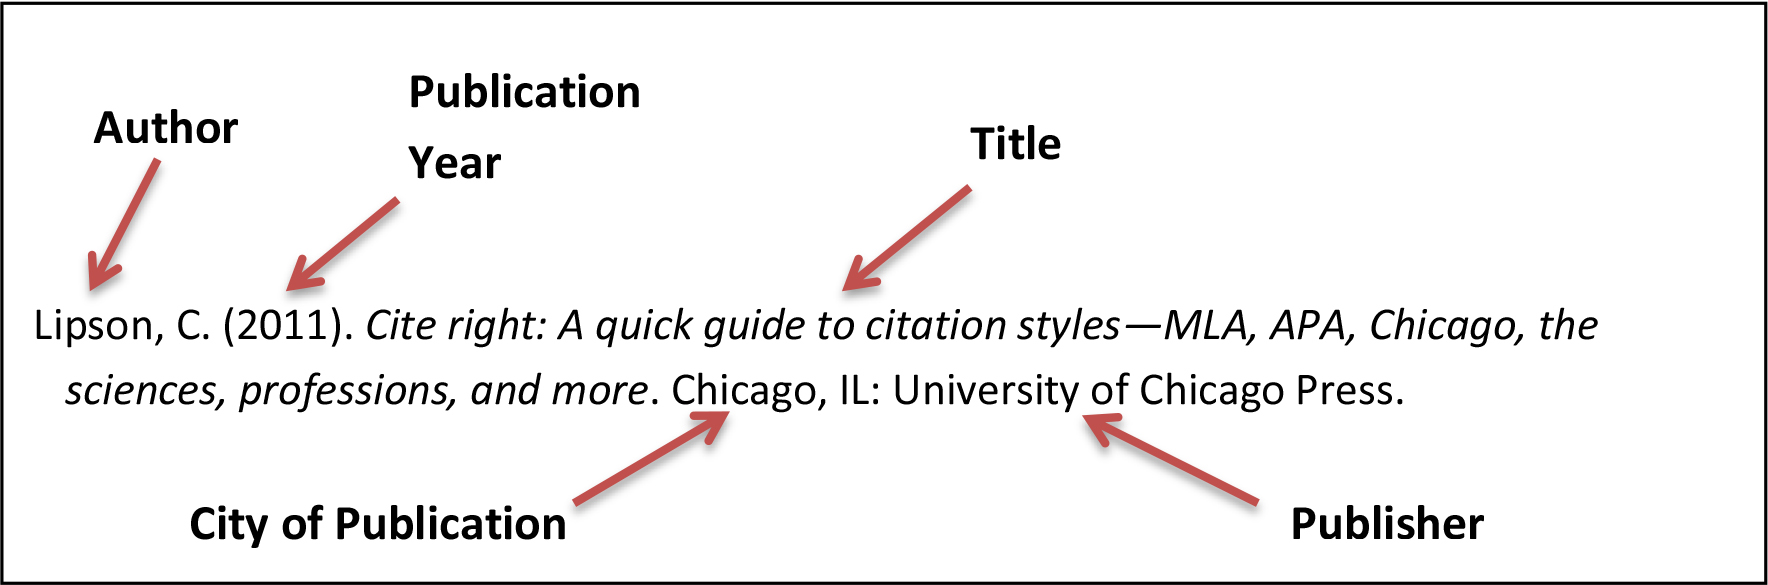 How to mention author's book in essay